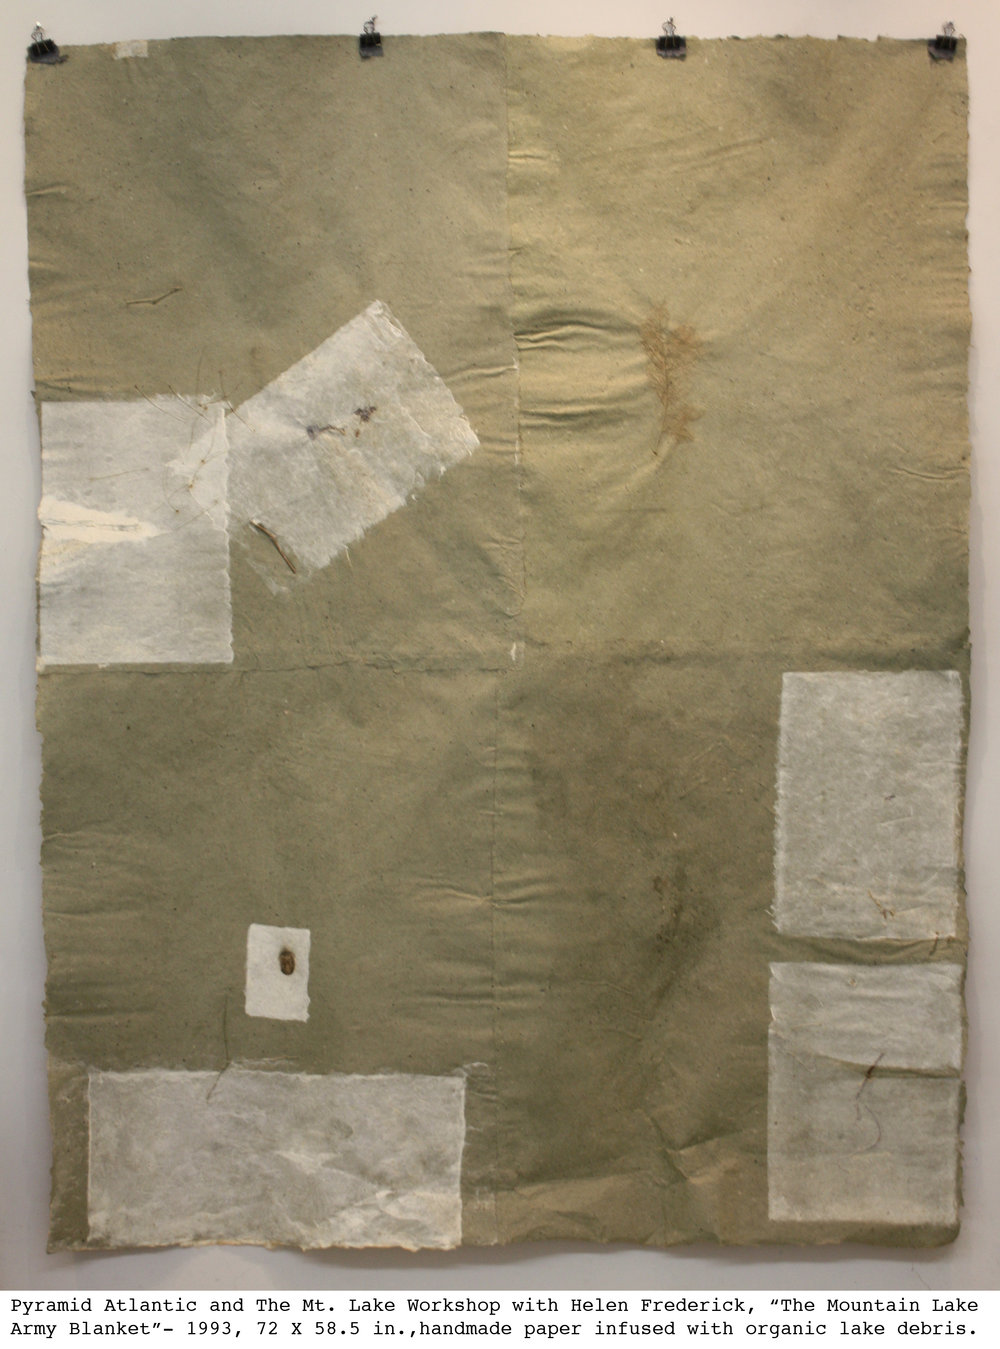 Mountain Lake Army Blanket, 1993, handmade paper infused with organic lake debris, 72 x 58.5 in. (182.88 x 148.59 cm)